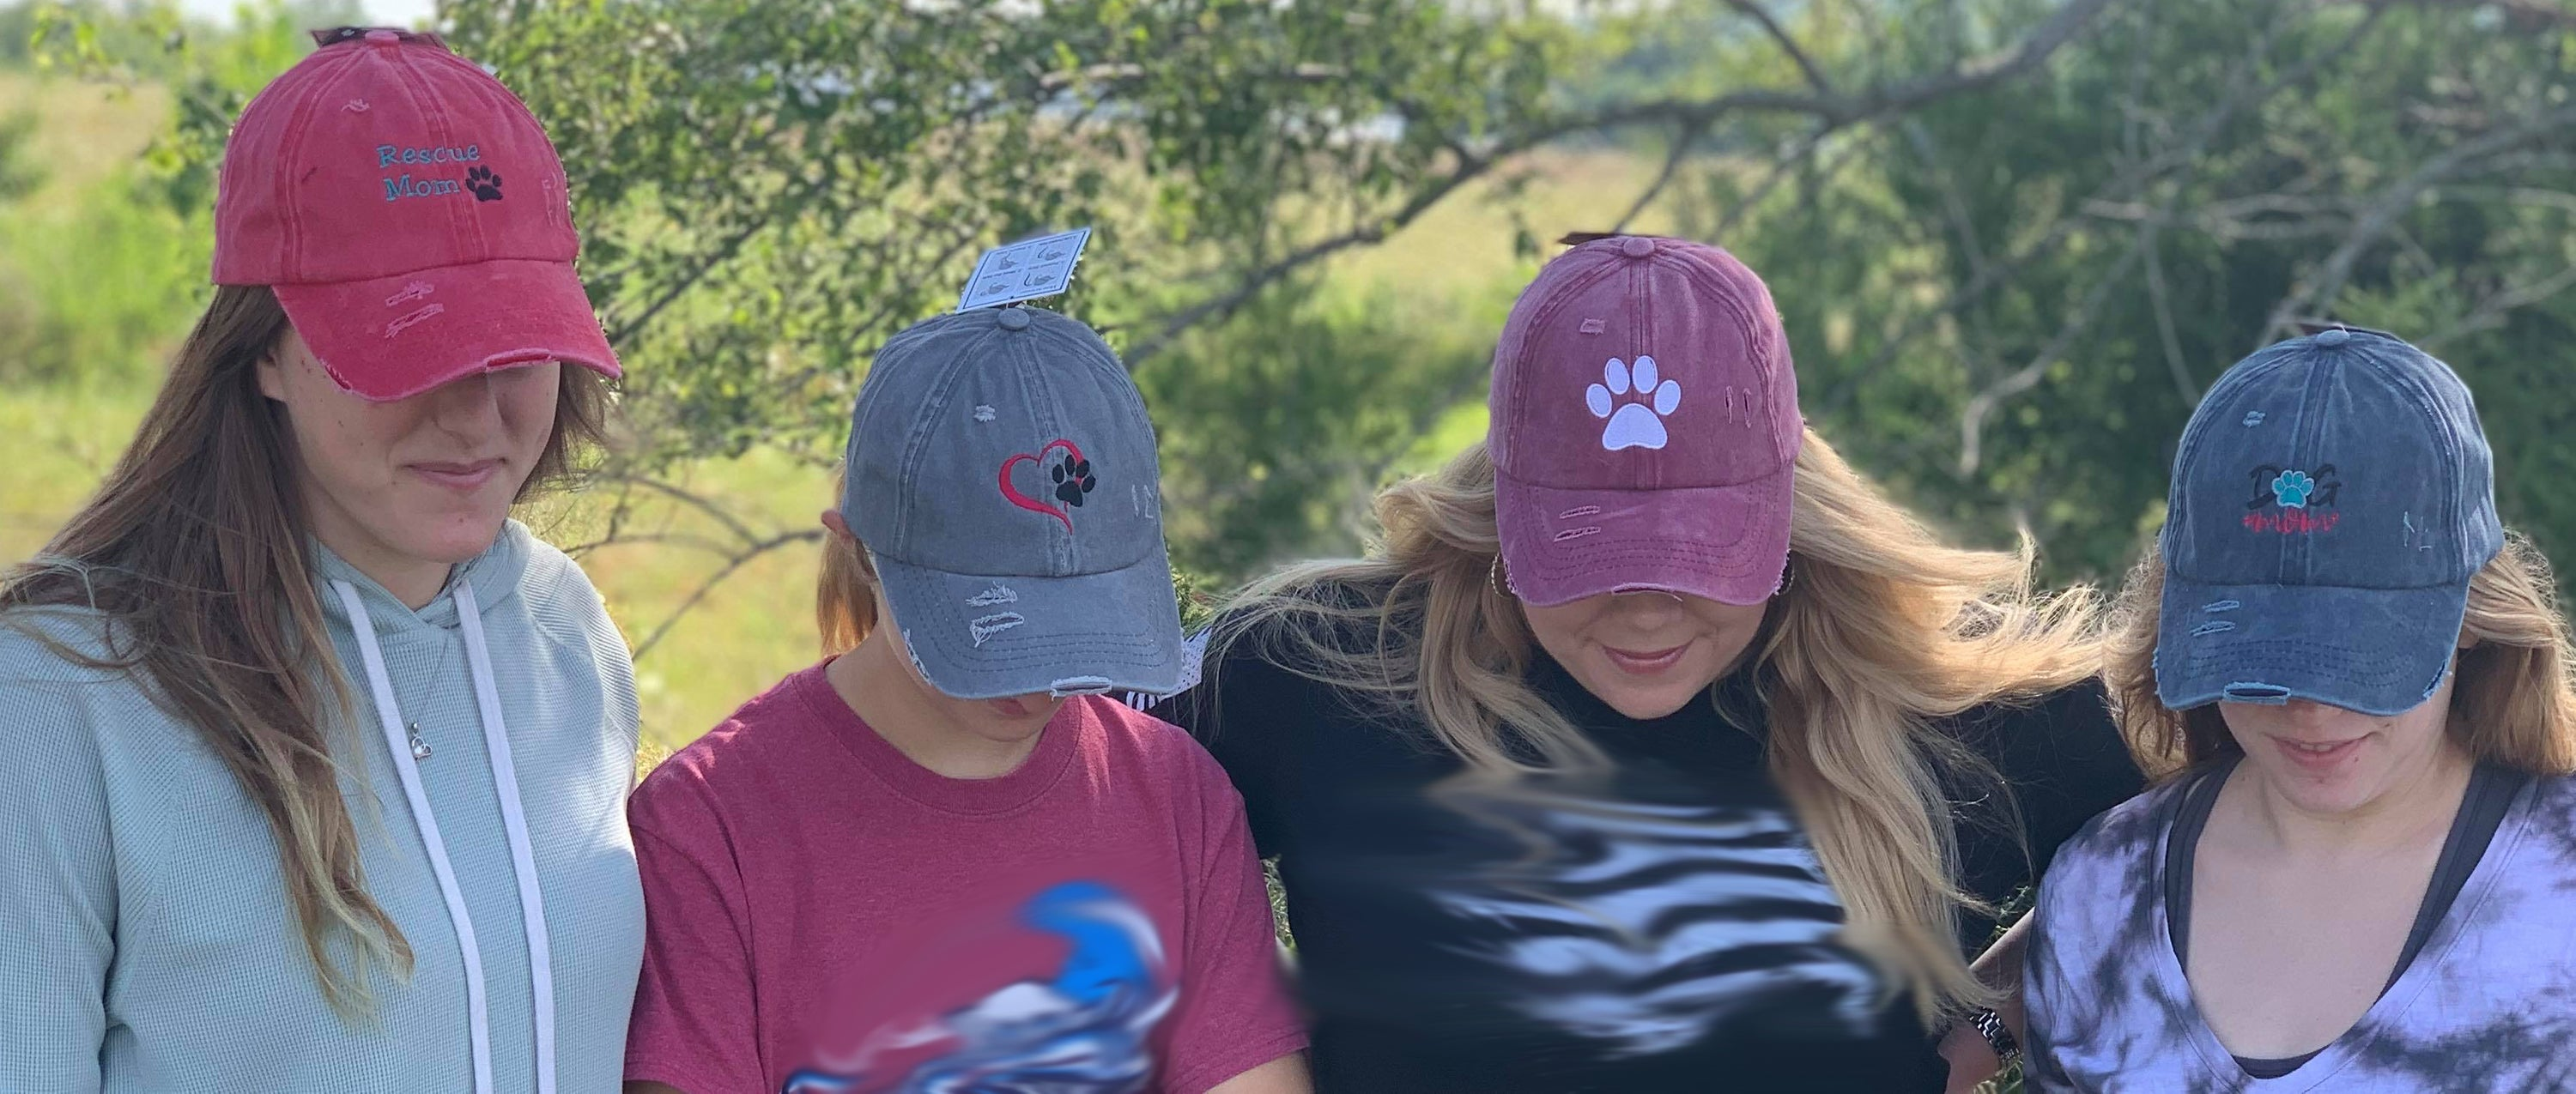 Distressed Ladder Back Pony Hats Rescue Mom, Paw Prints Love pets